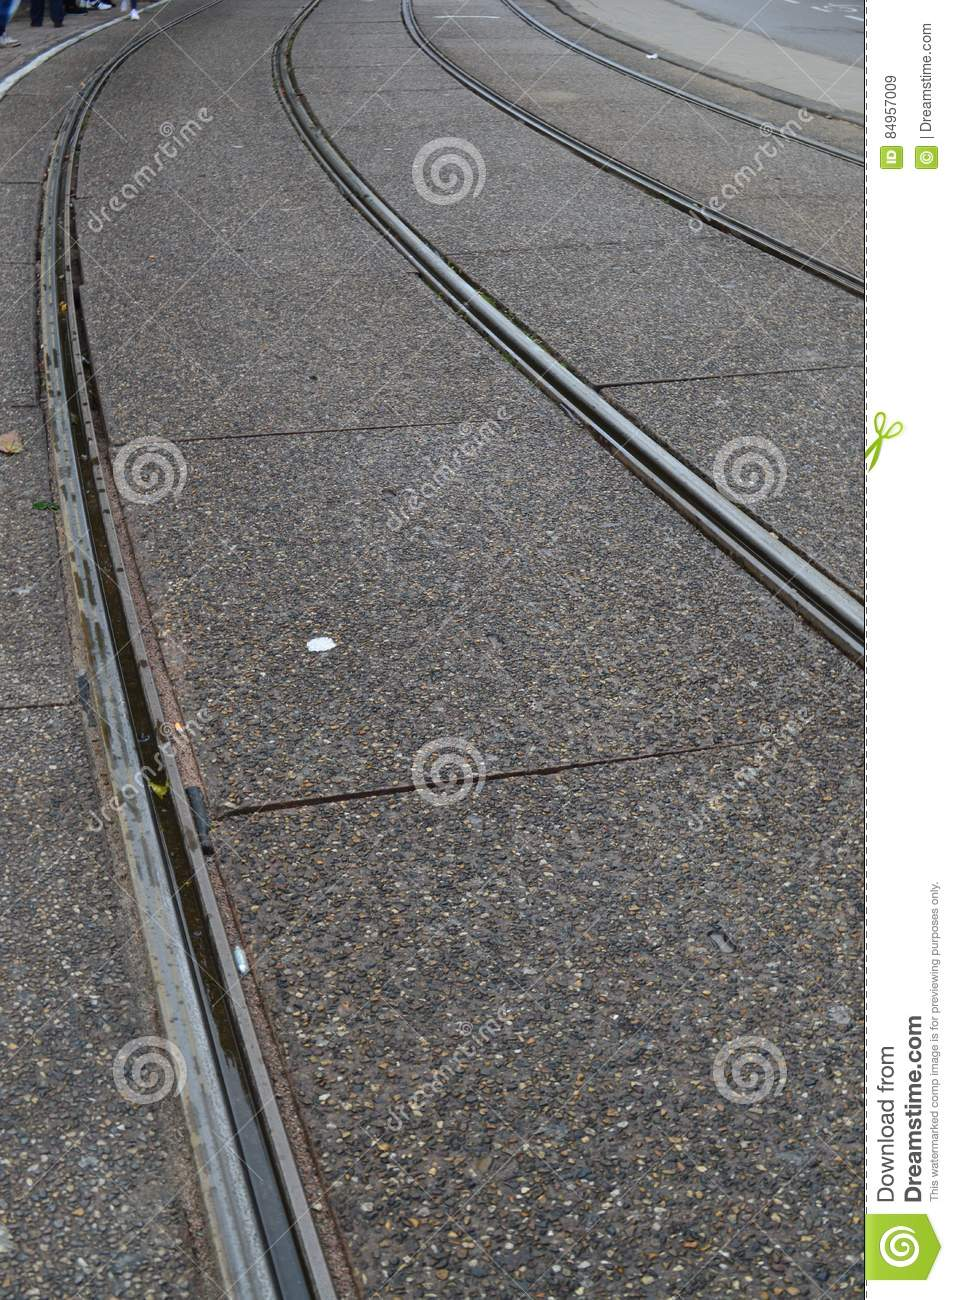 Trolley Tracks in Amsterdam